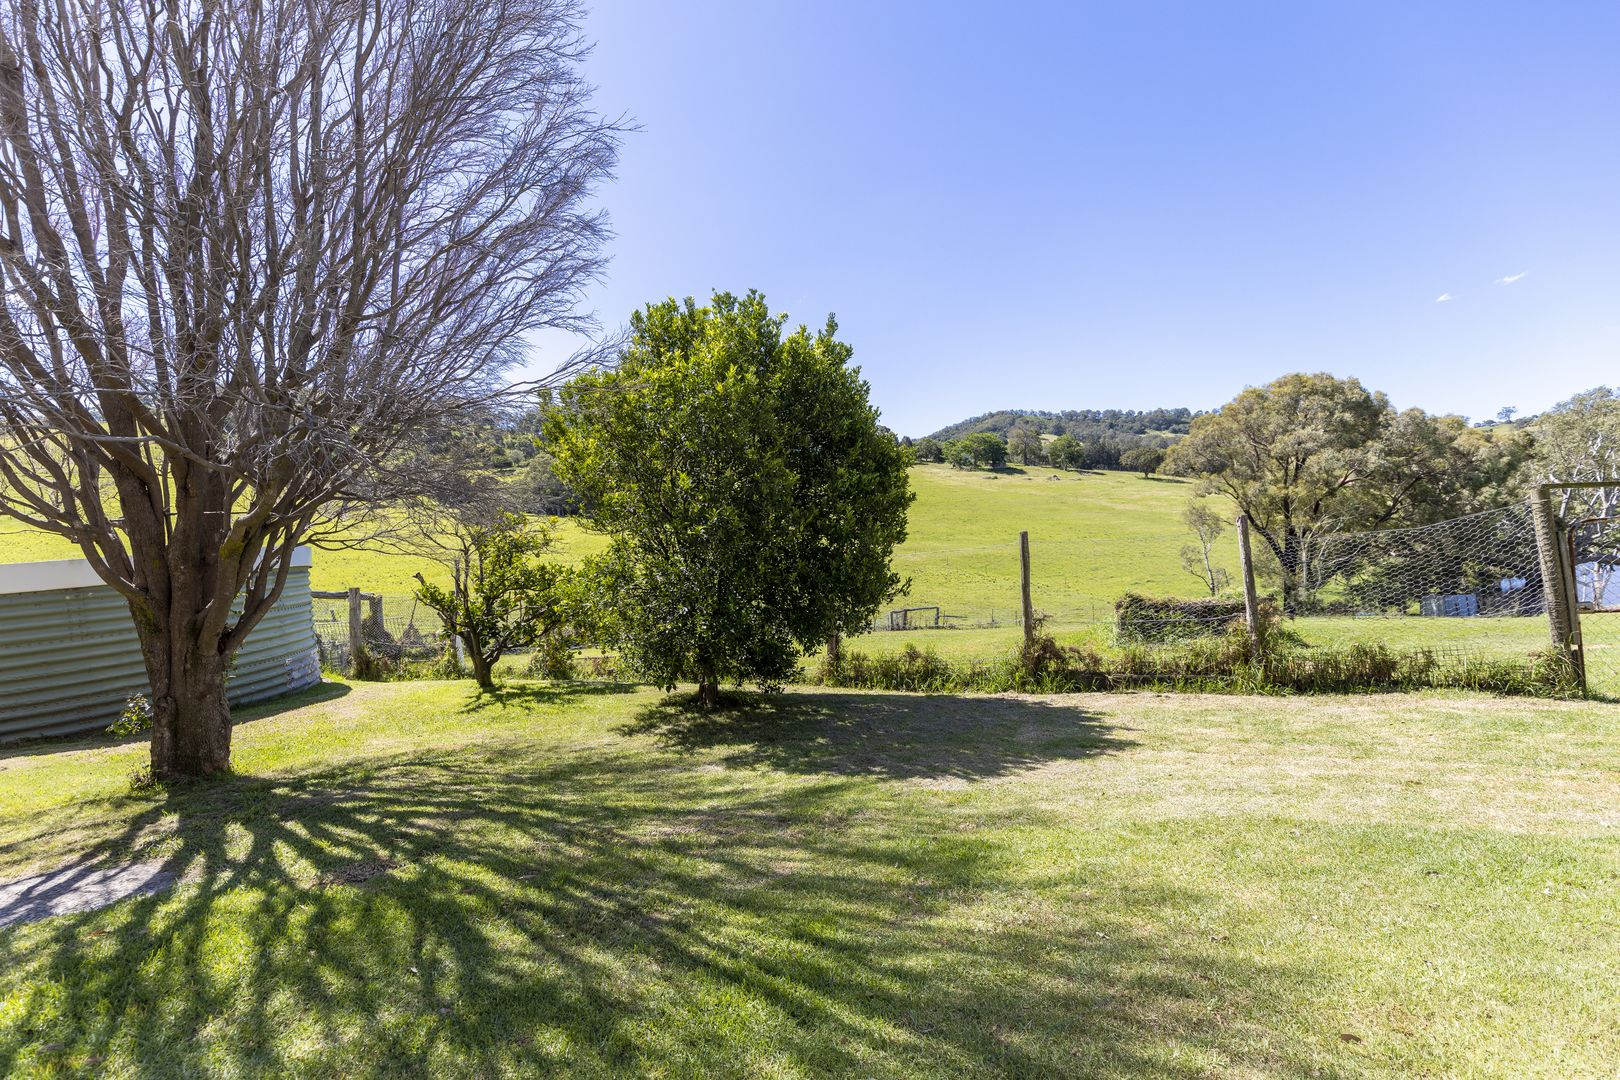 484 Marshall Mount Road, Marshall Mount NSW 2530, Image 0